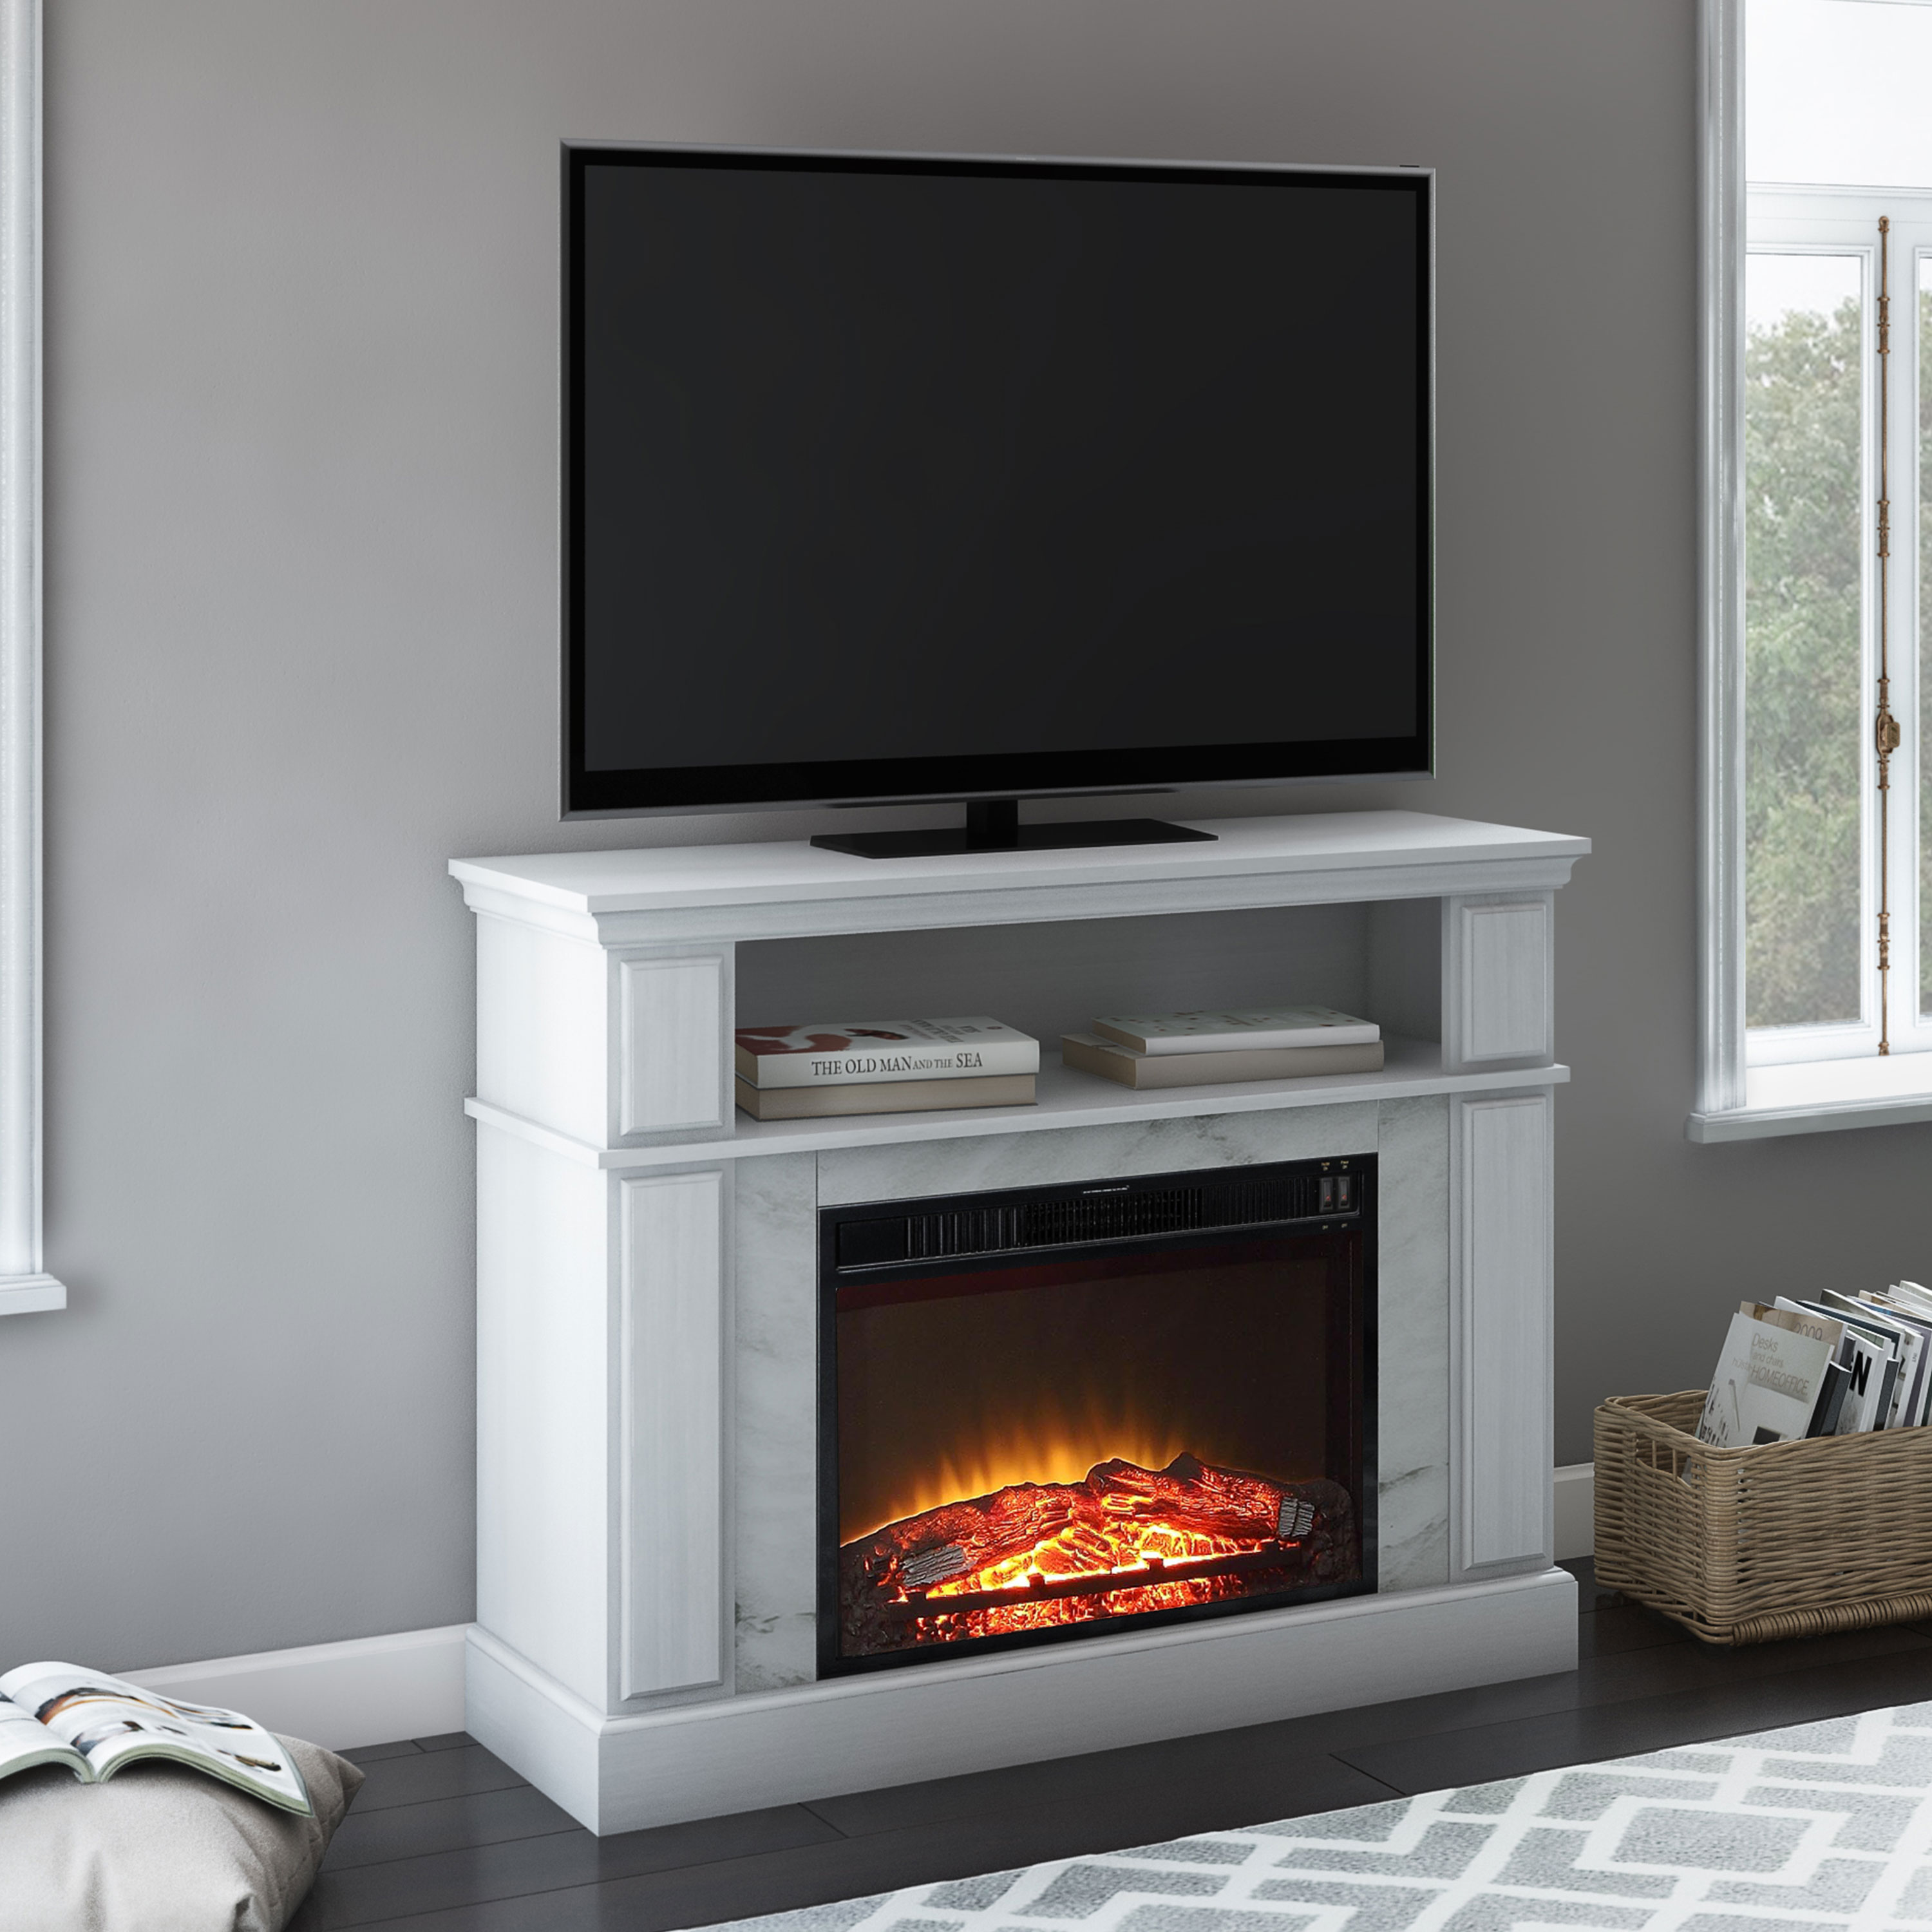 "Mainstays Loring Media Fireplace for TVs up to 50"", Multiple Finishes Available"